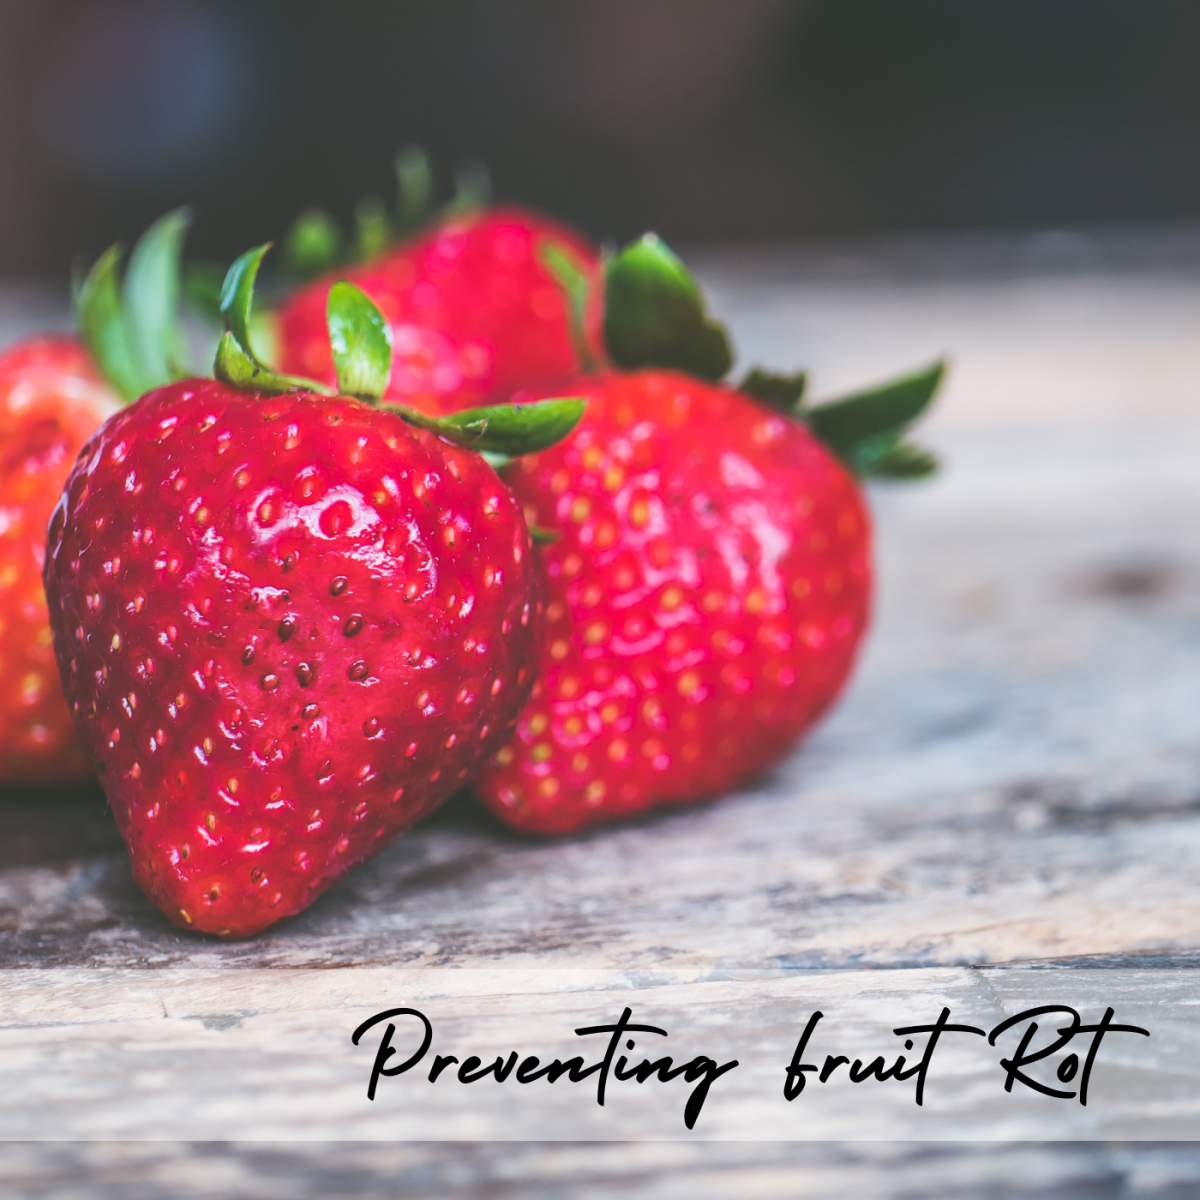 Mushy Strawberries? No thanks! Learn how to identify and prevent different kinds of fruit rot.